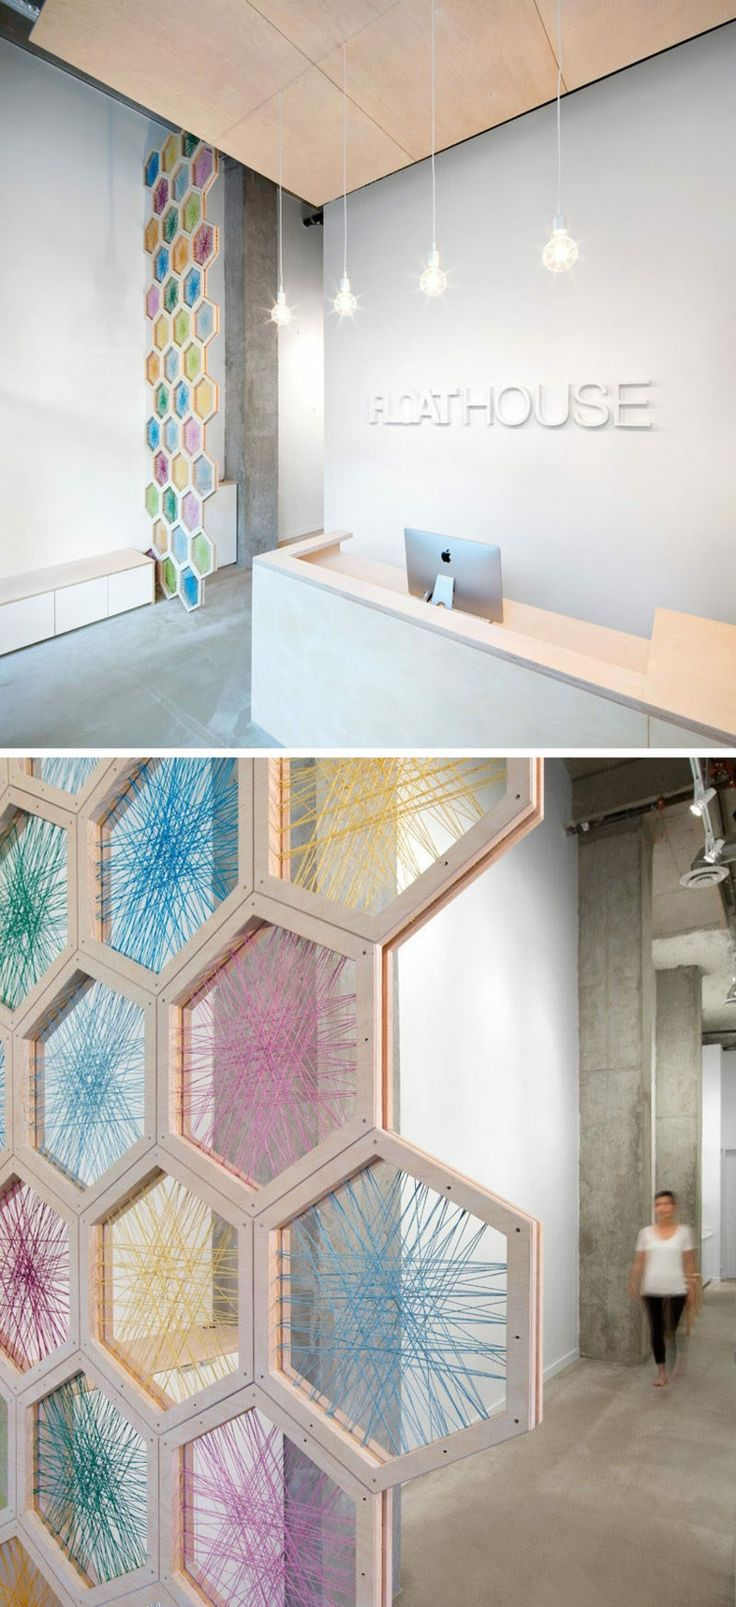 Room divider in honeycomb shapes